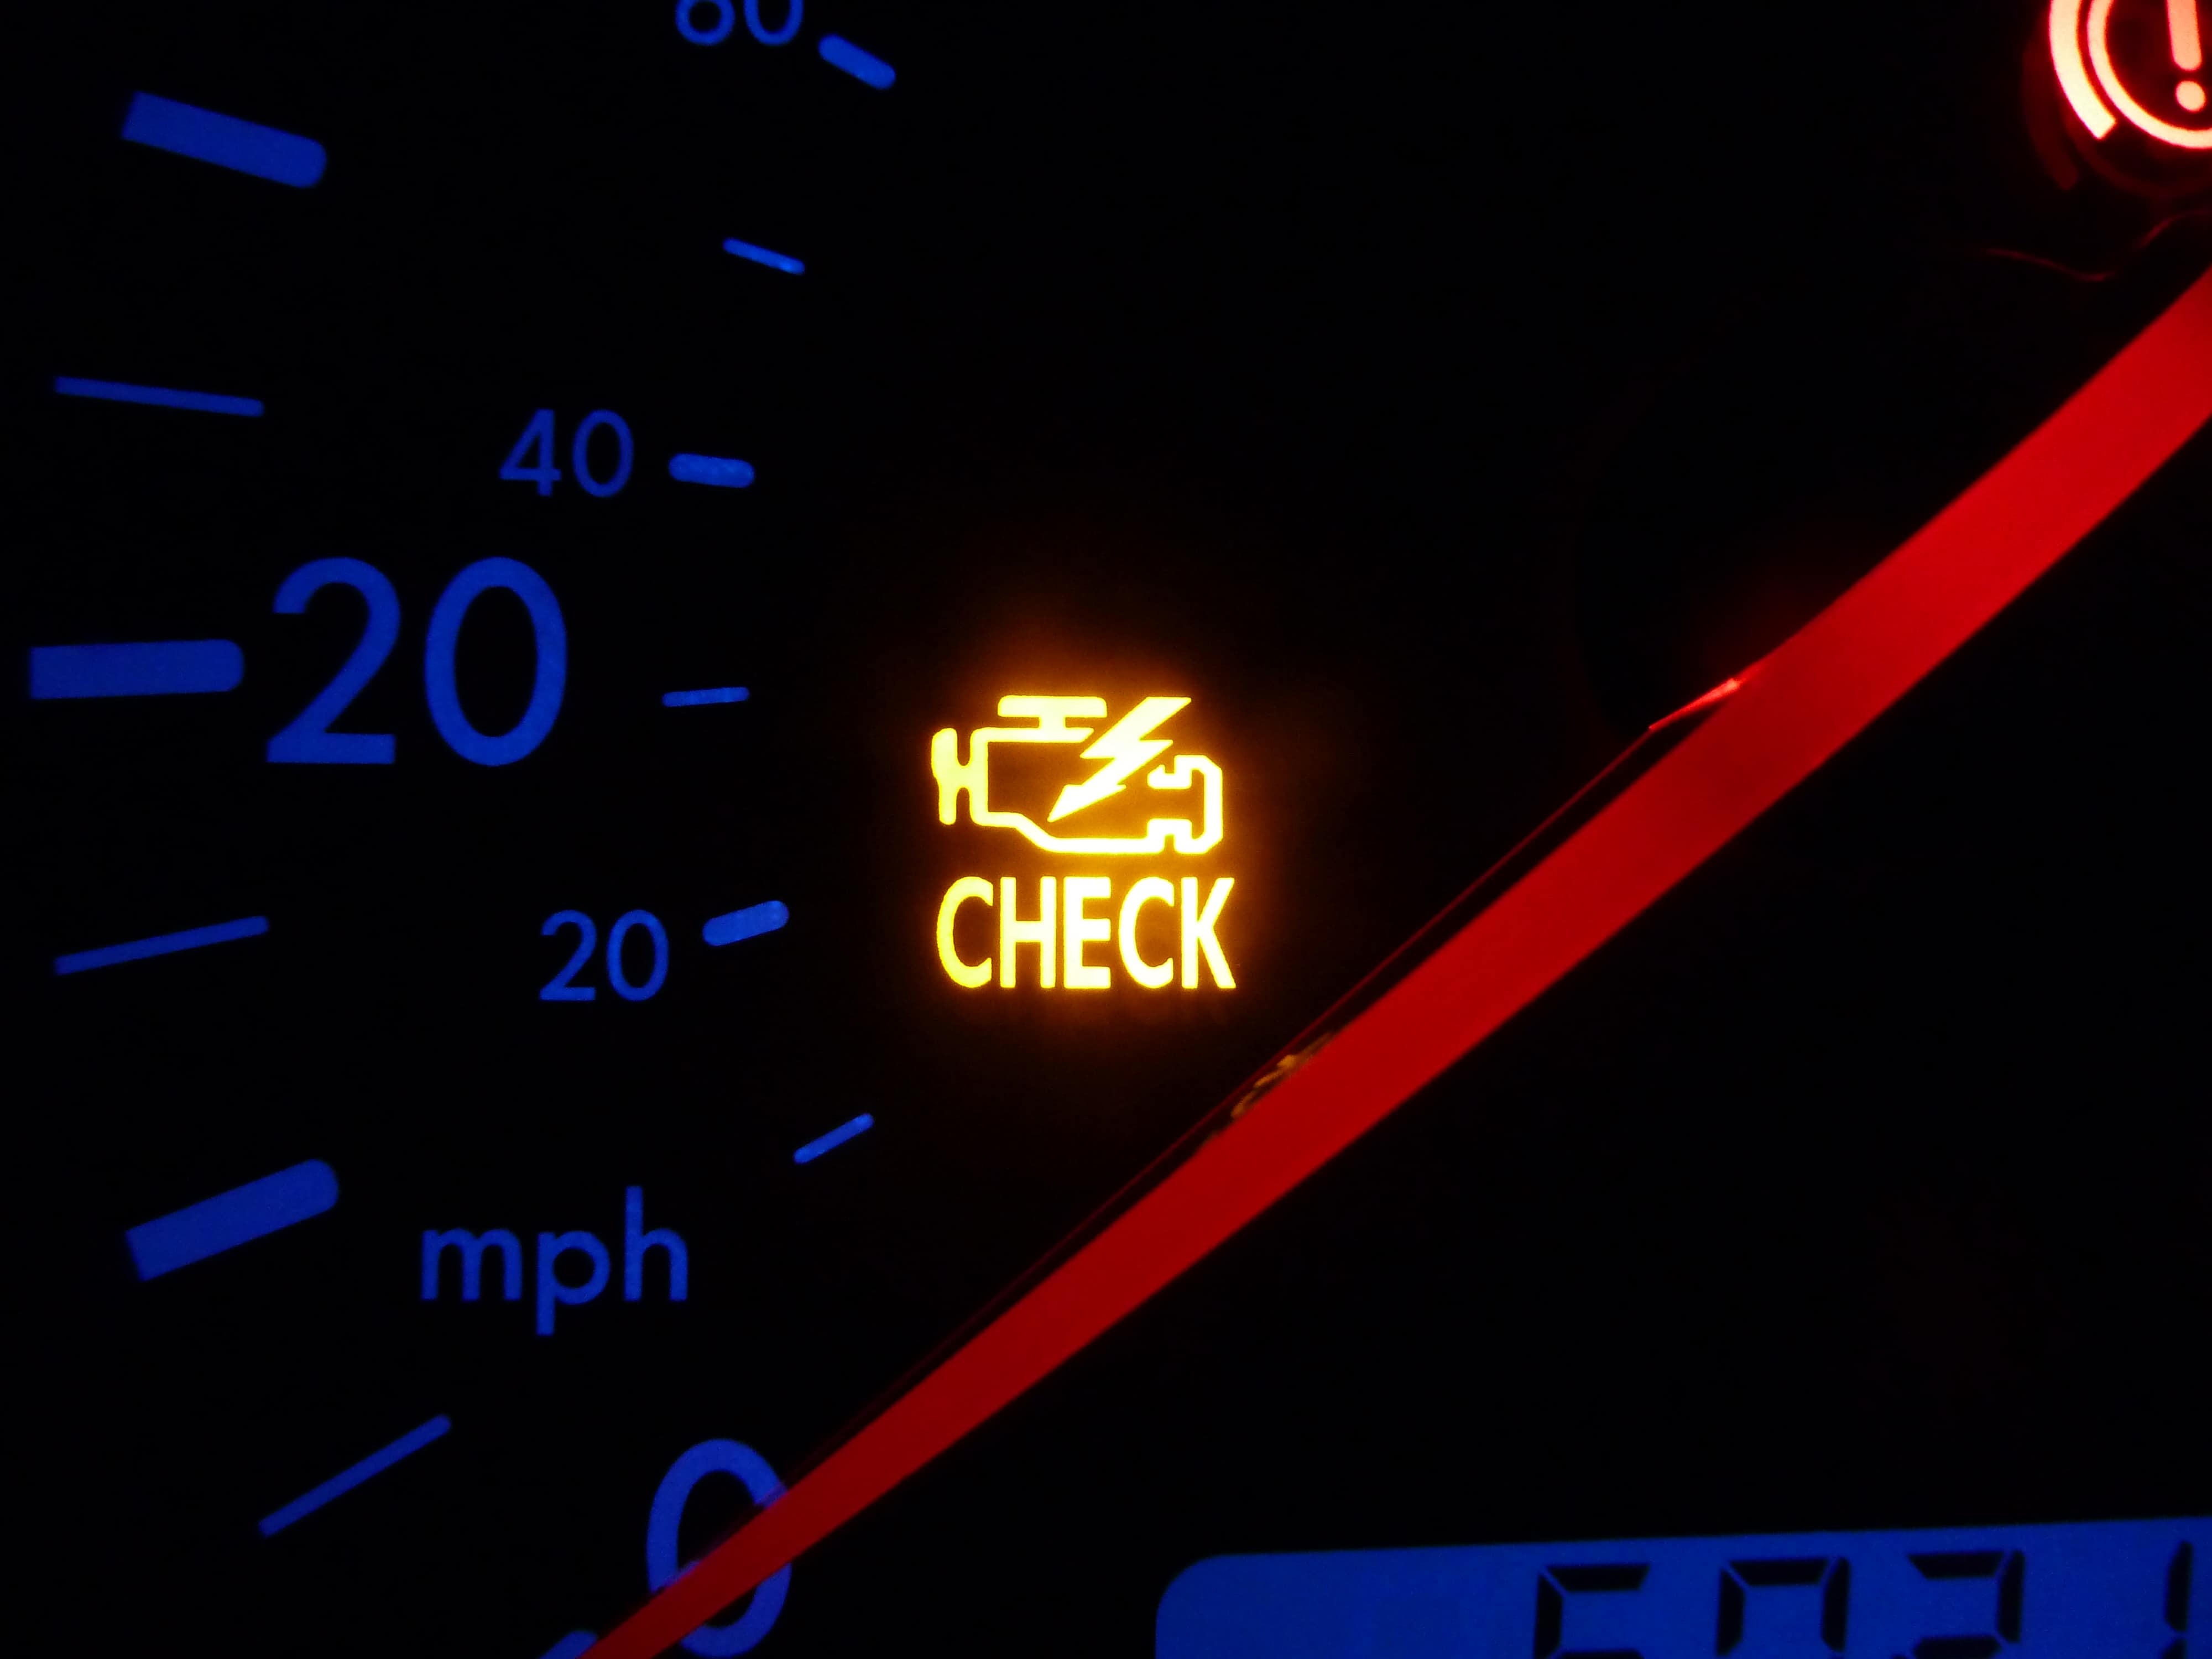 How to reset check engine light without disconnecting battery - Car Care  Portal